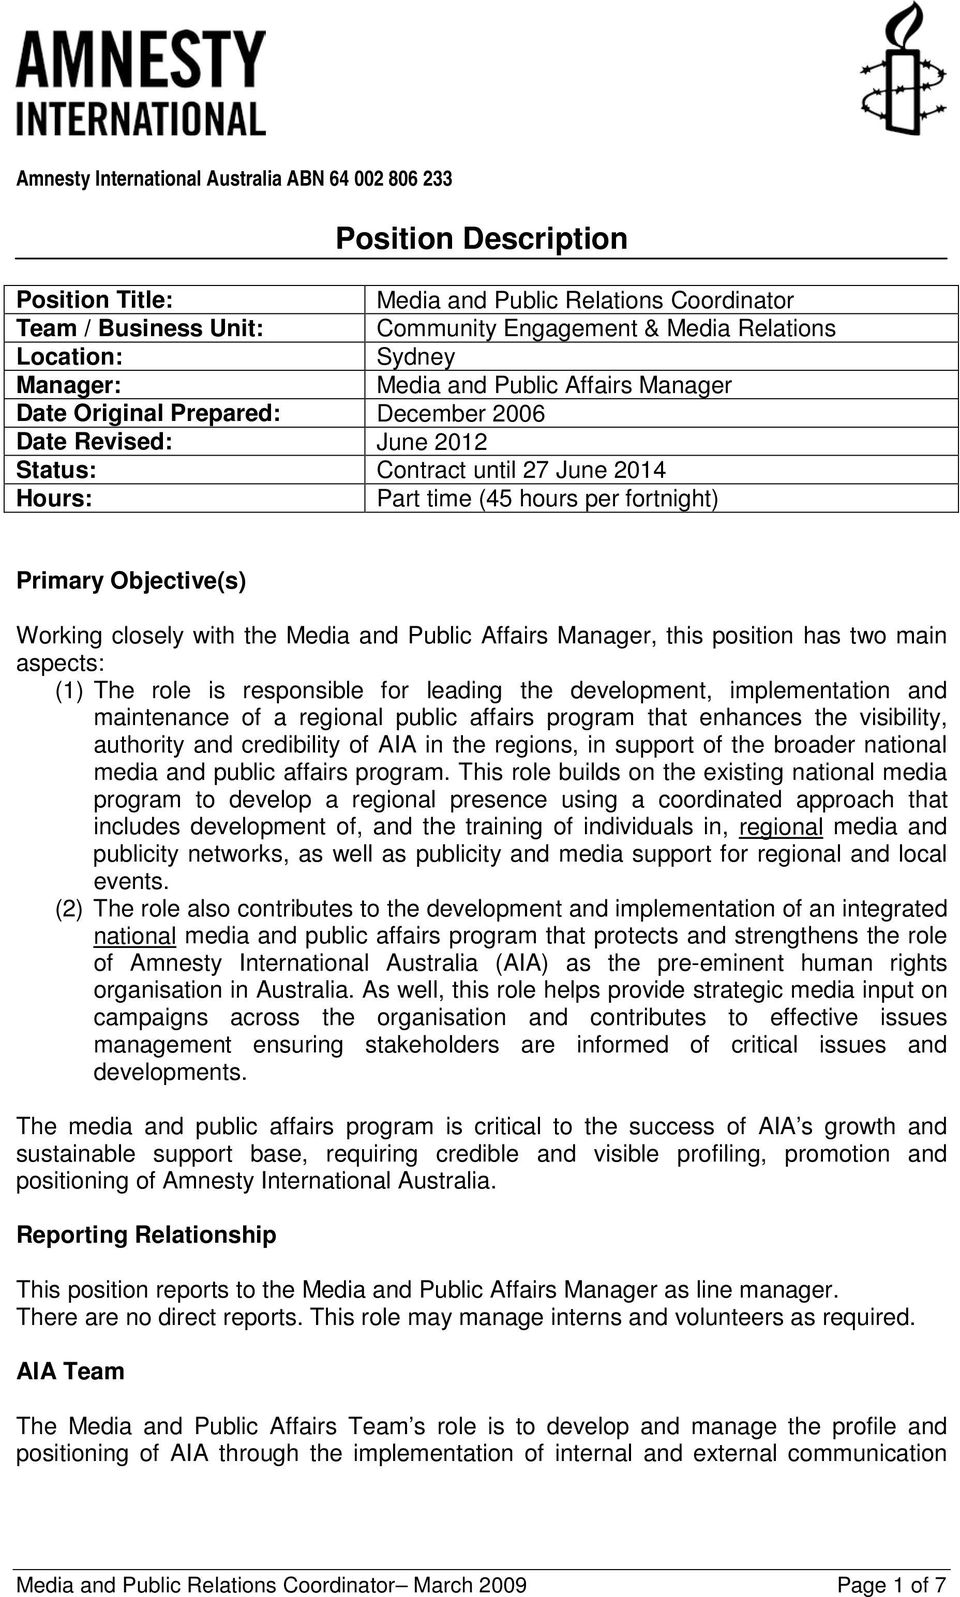 Affairs Manager, this position has two main aspects: (1) The role is responsible for leading the development, implementation and maintenance of a regional public affairs program that enhances the